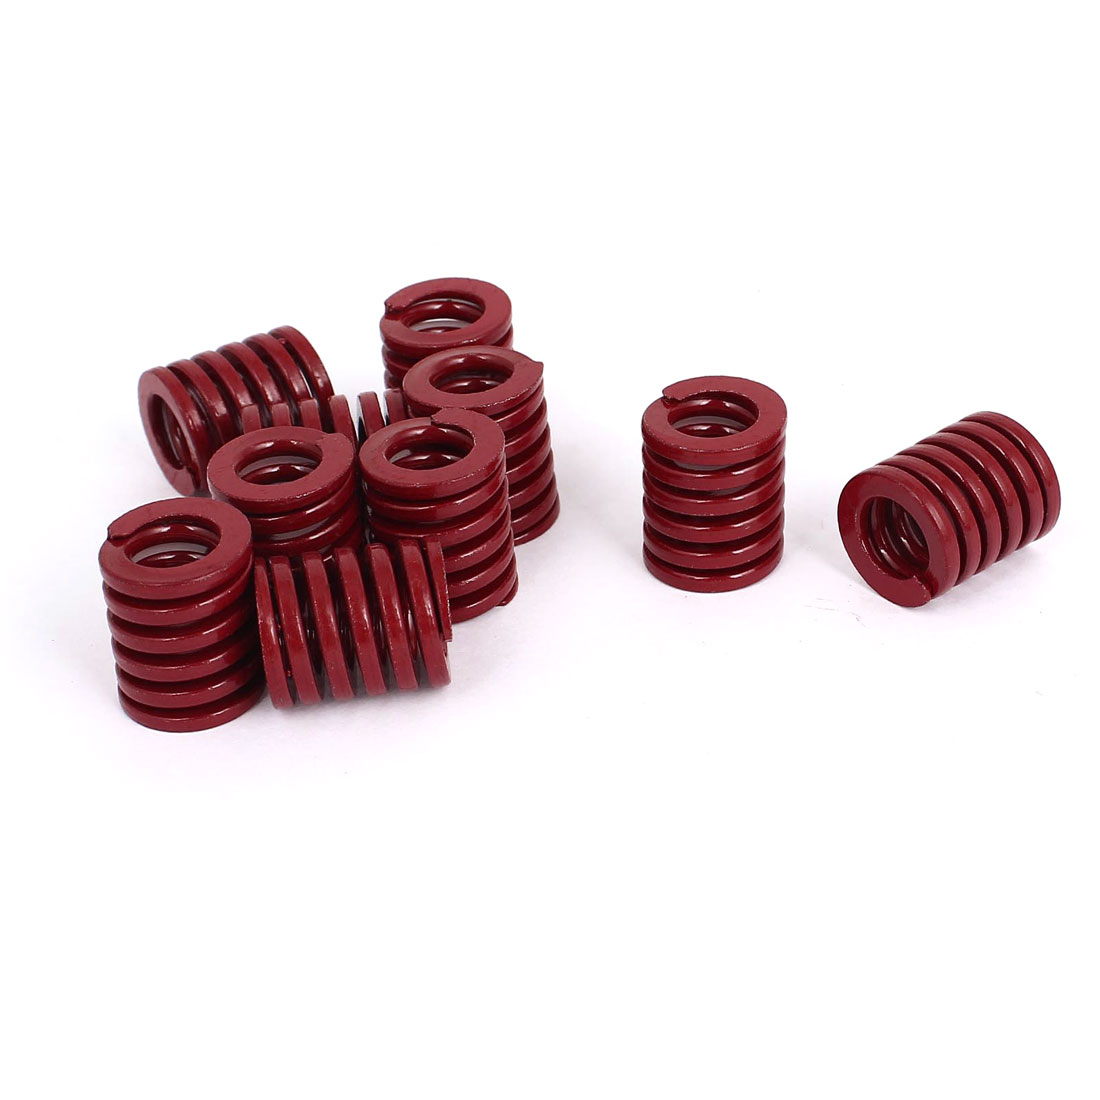 18mm OD 20mm Long Medium Load Stamping Compression Mold Die Spring Red 10pcs